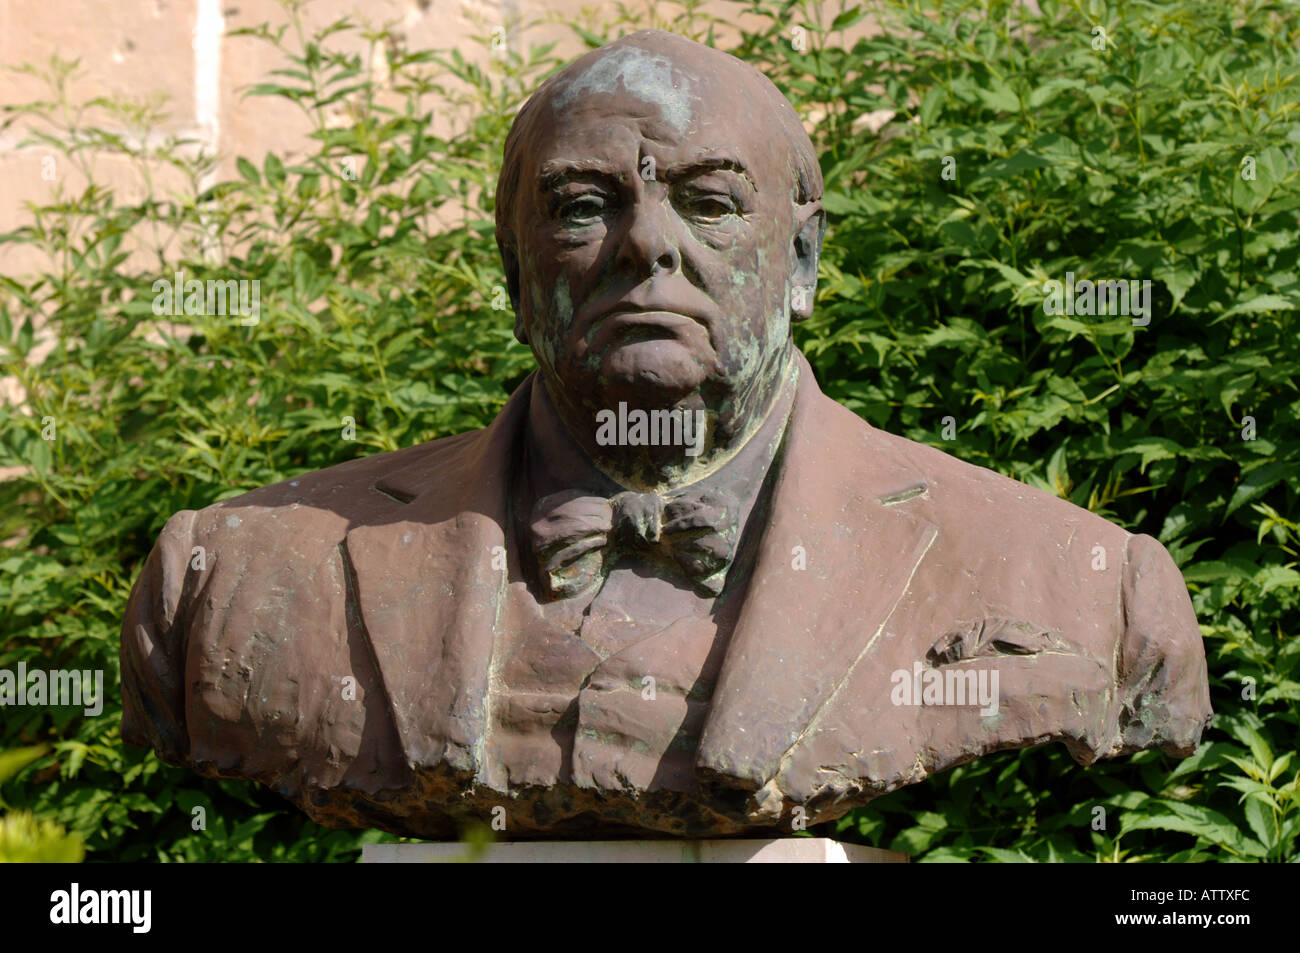 Sir Winston Churchill statue Barrakka Gardens The Island of Malta - Stock Image